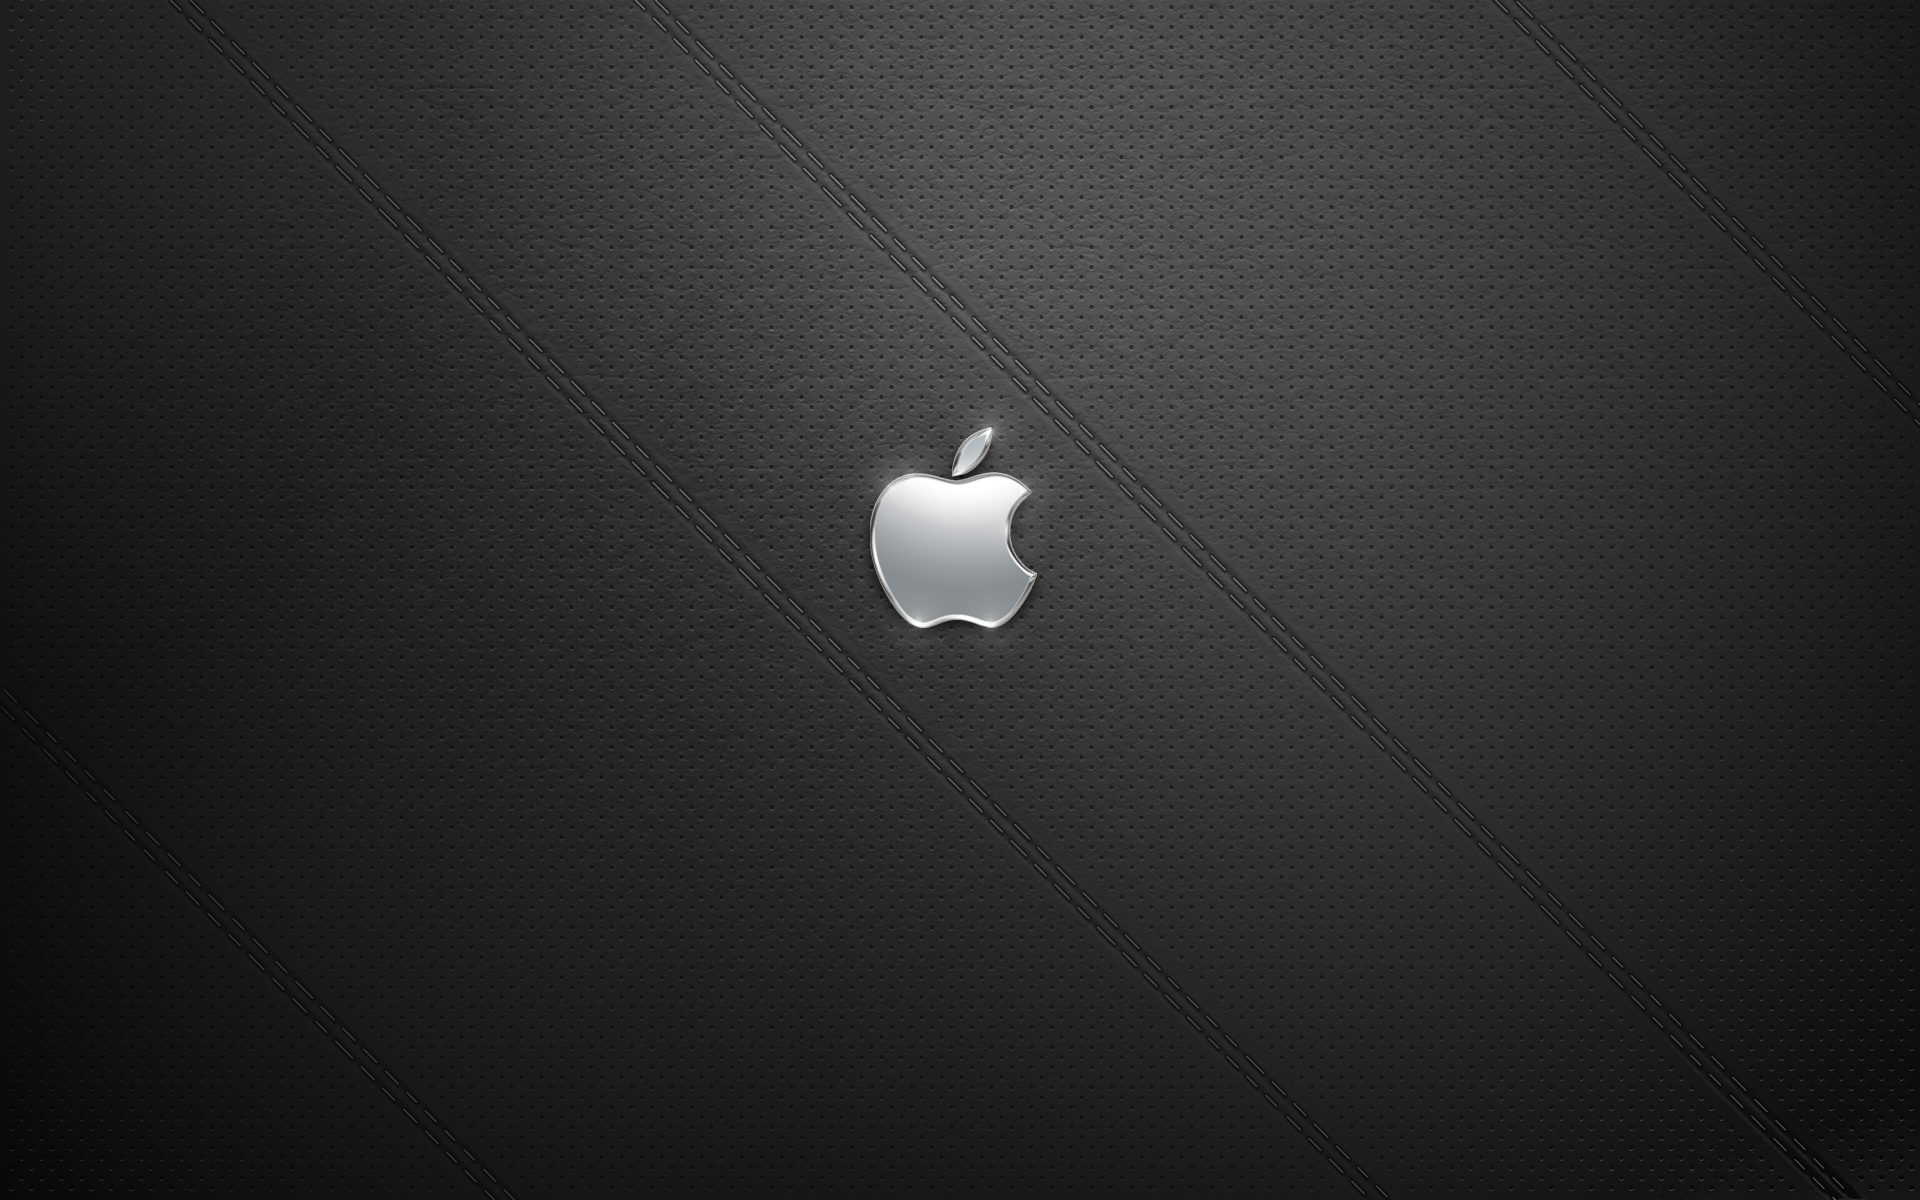 The Art of Adam Betts 187 Black Leather Apple Desktop Background 1920x1200